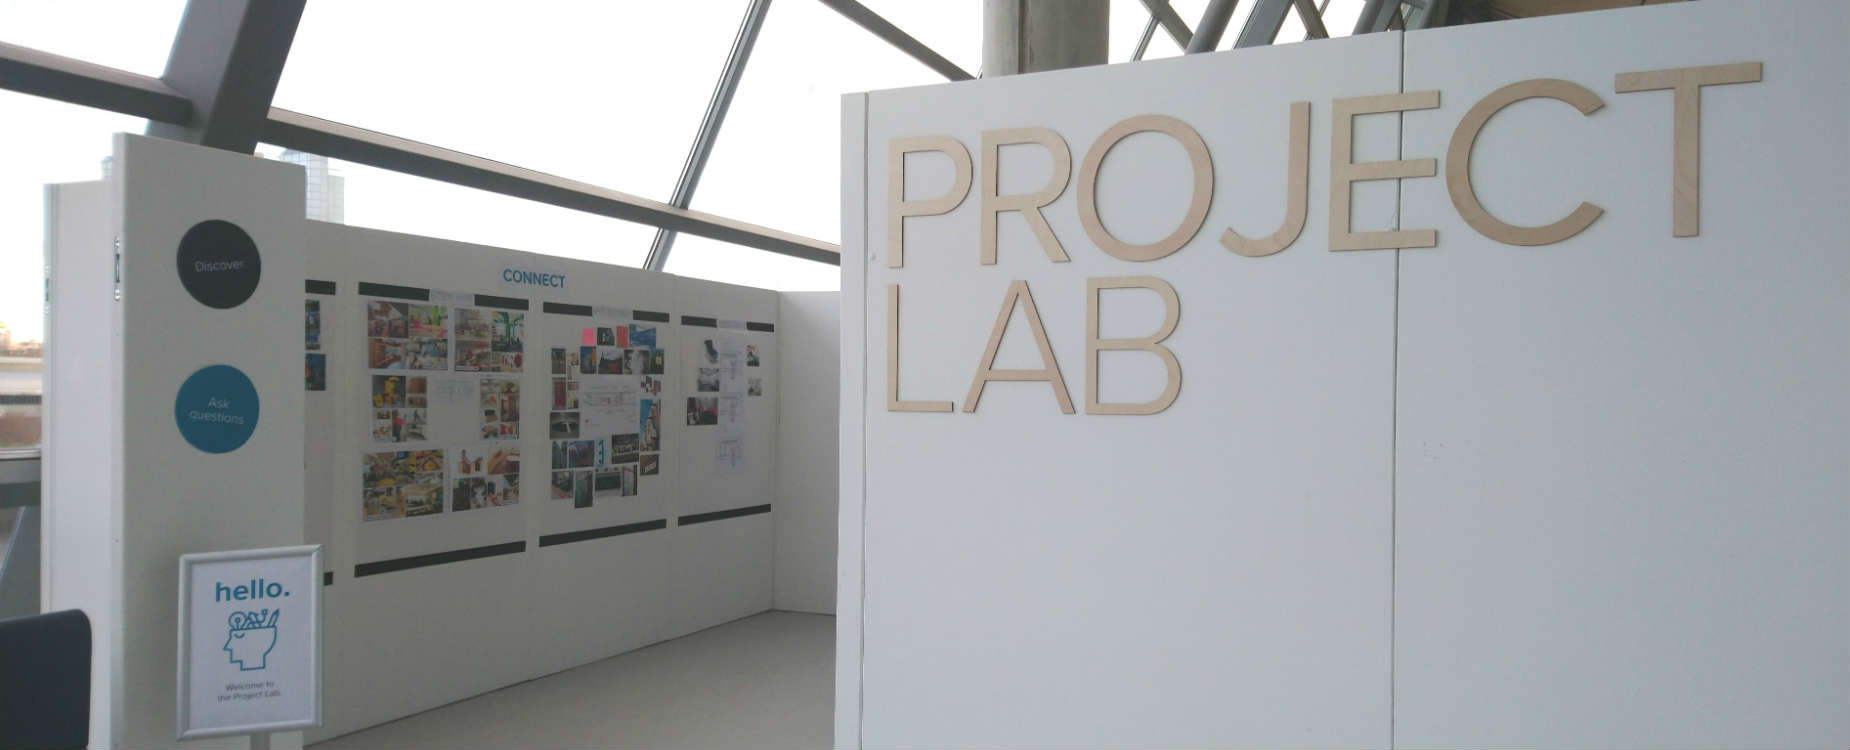 Project Lab entrance